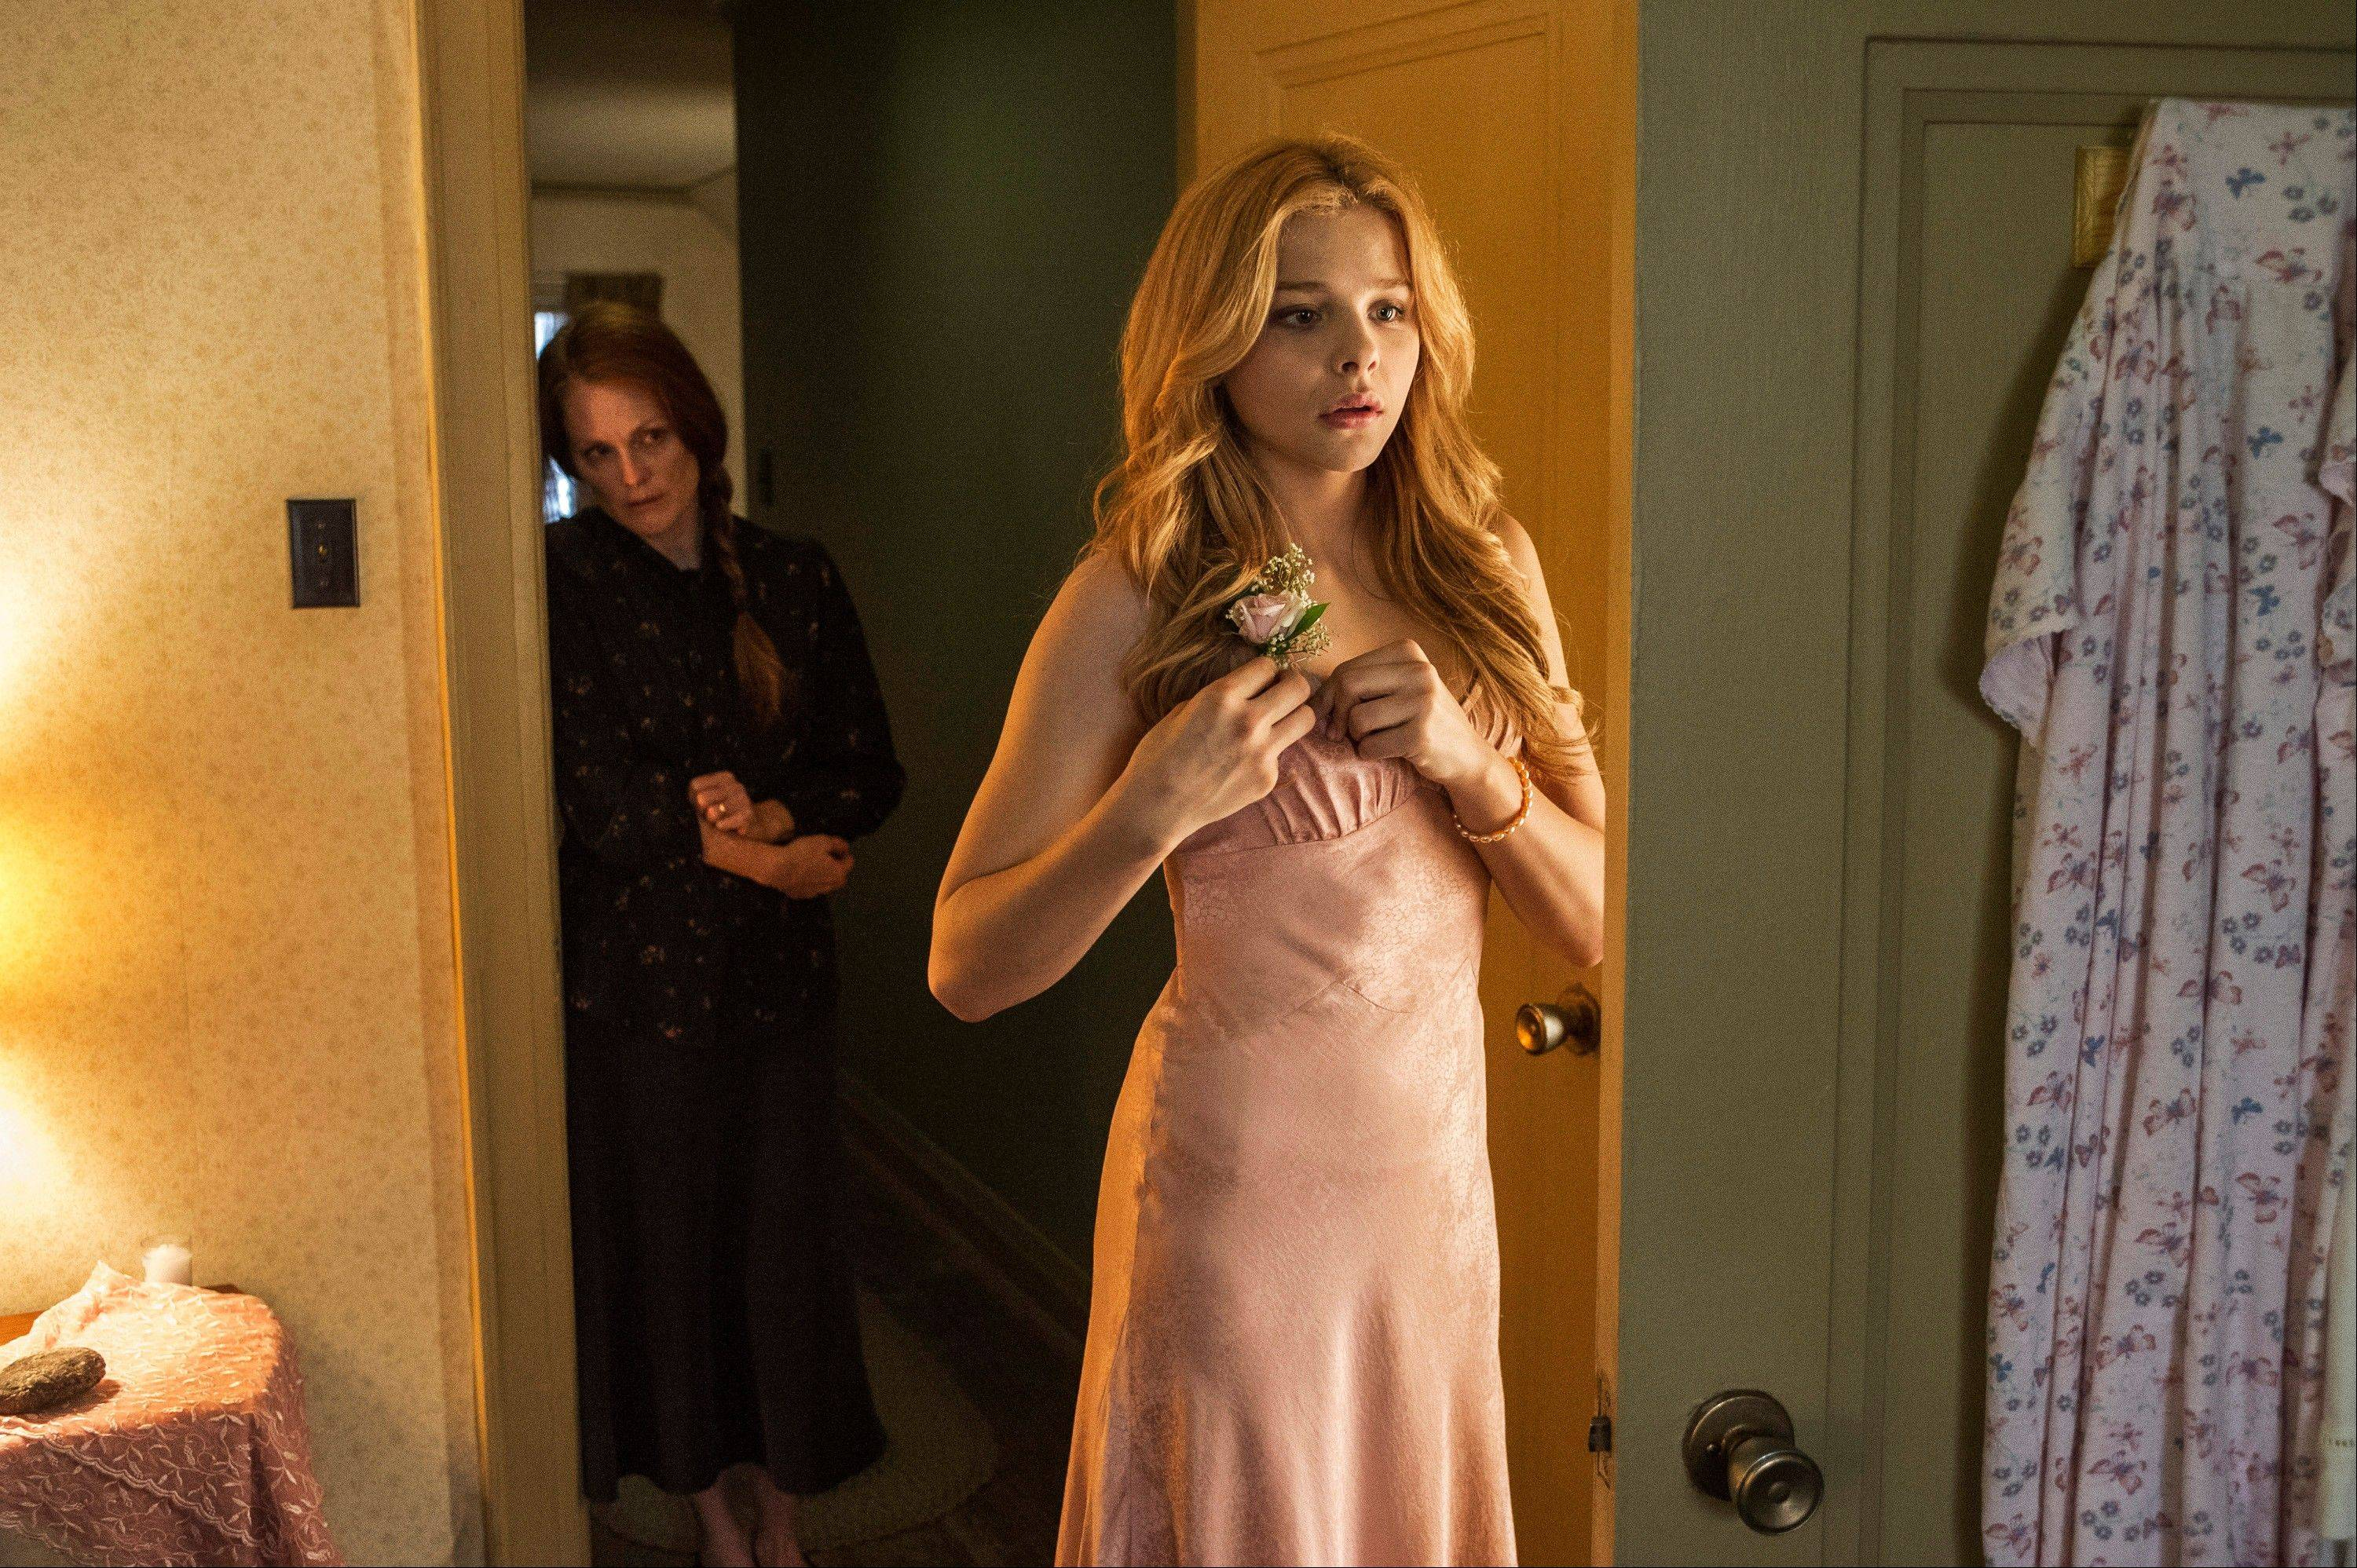 Margaret White (Julianne Moore), left, isn�t so sure about her daughter Carrie (Chloe Grace Moretz) going to prom in the latest update of �Carrie.�